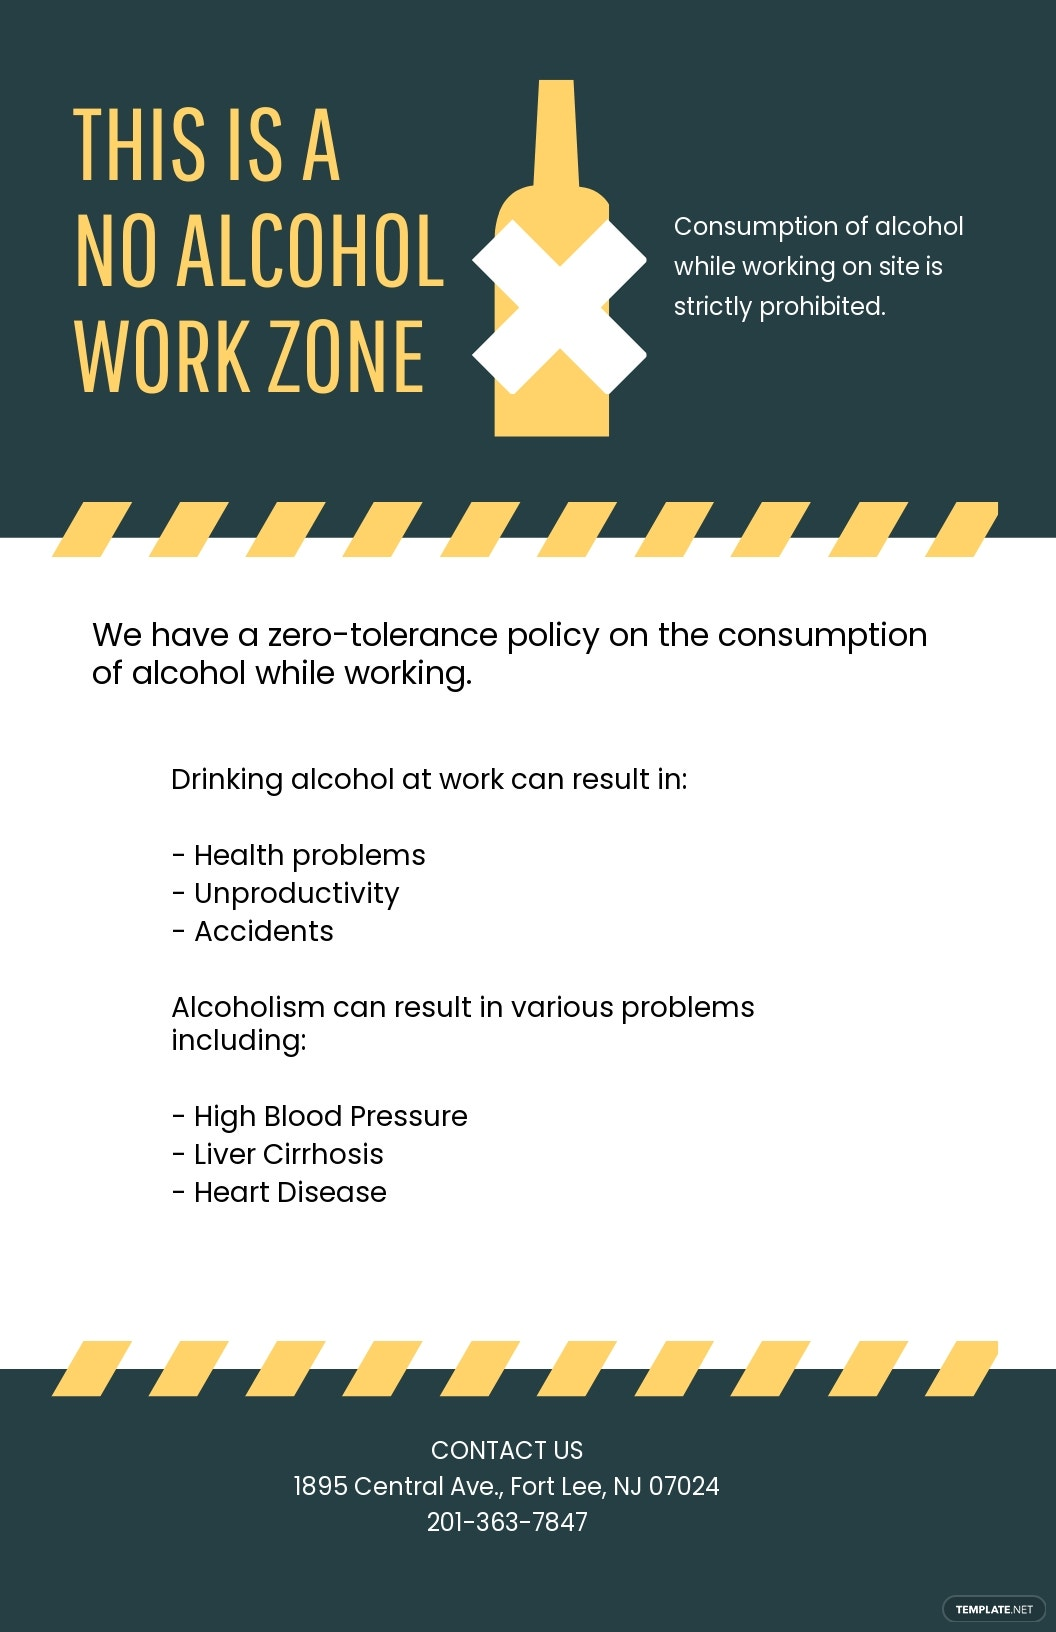 Free Editable Alcohol at Work Poster Template.jpe